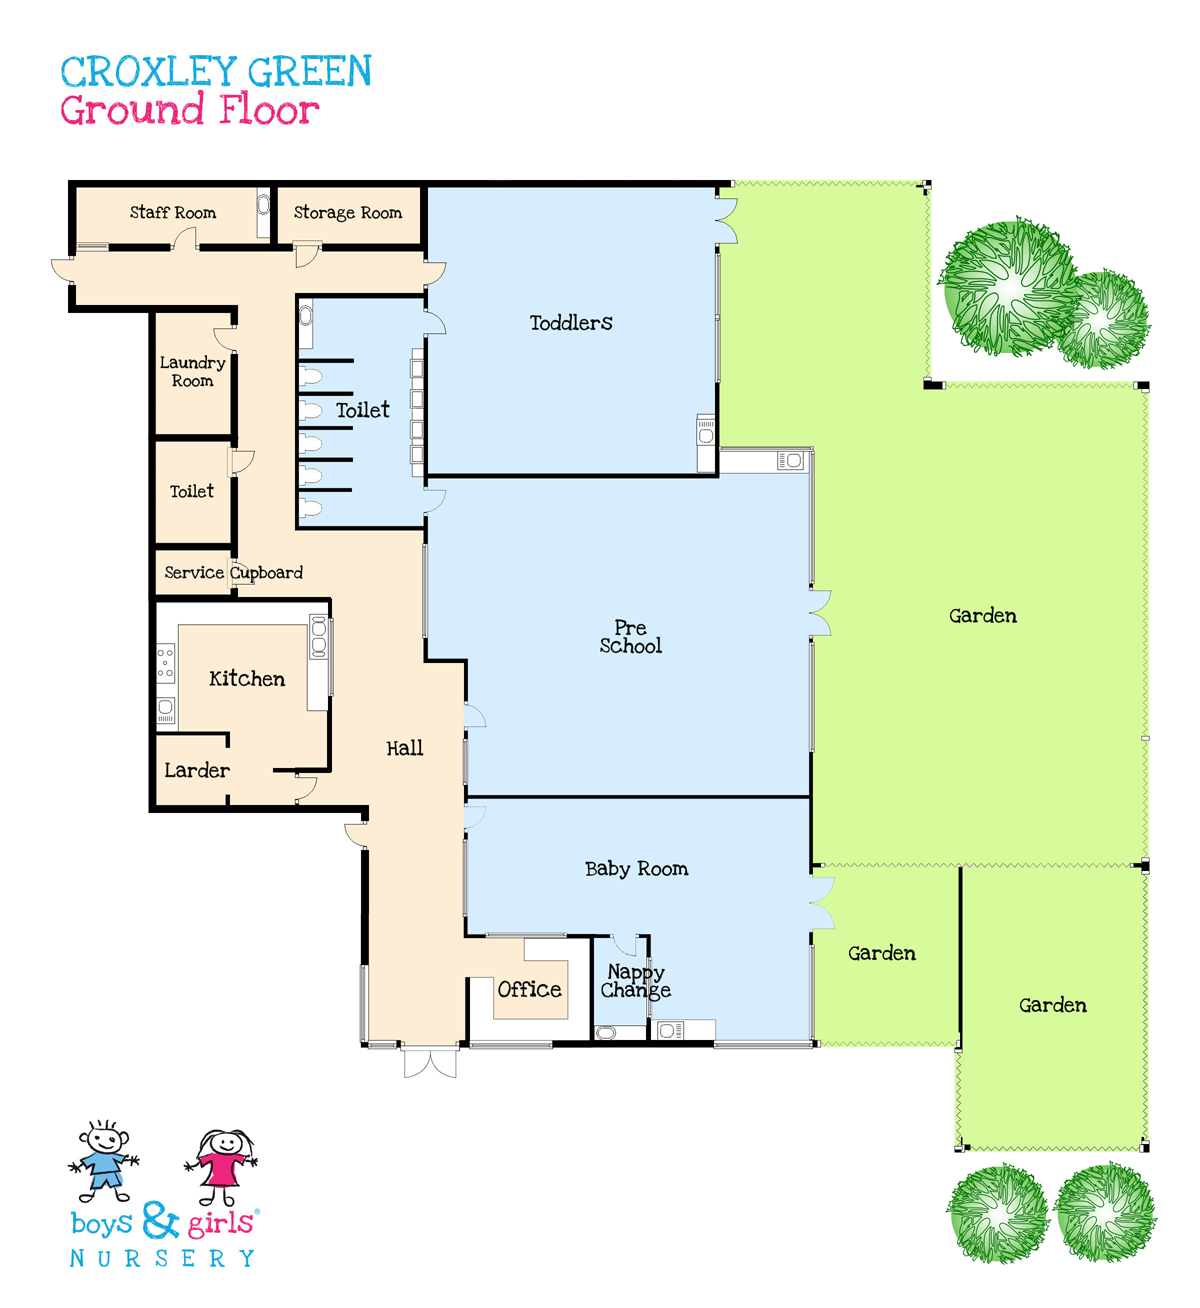 Home Office Floor Plan Pre School Amp Nursery In Croxley Green Boys Amp Girls Nursery